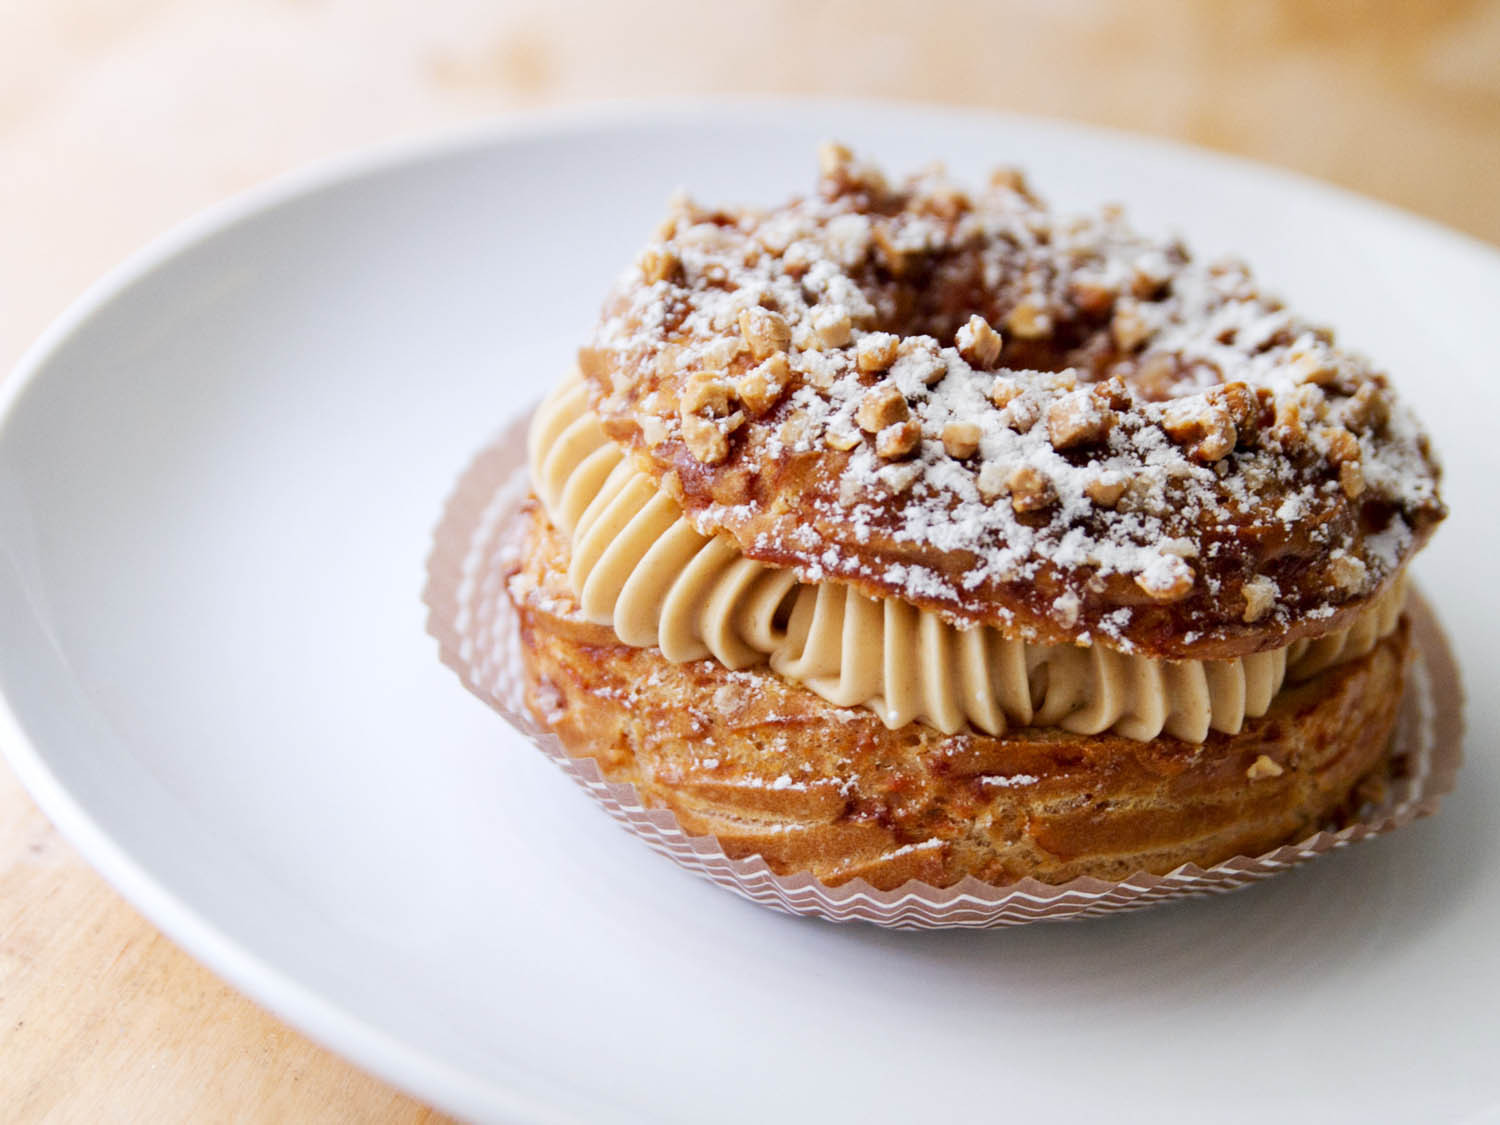 Best French Desserts  The Best French Bakeries in NYC